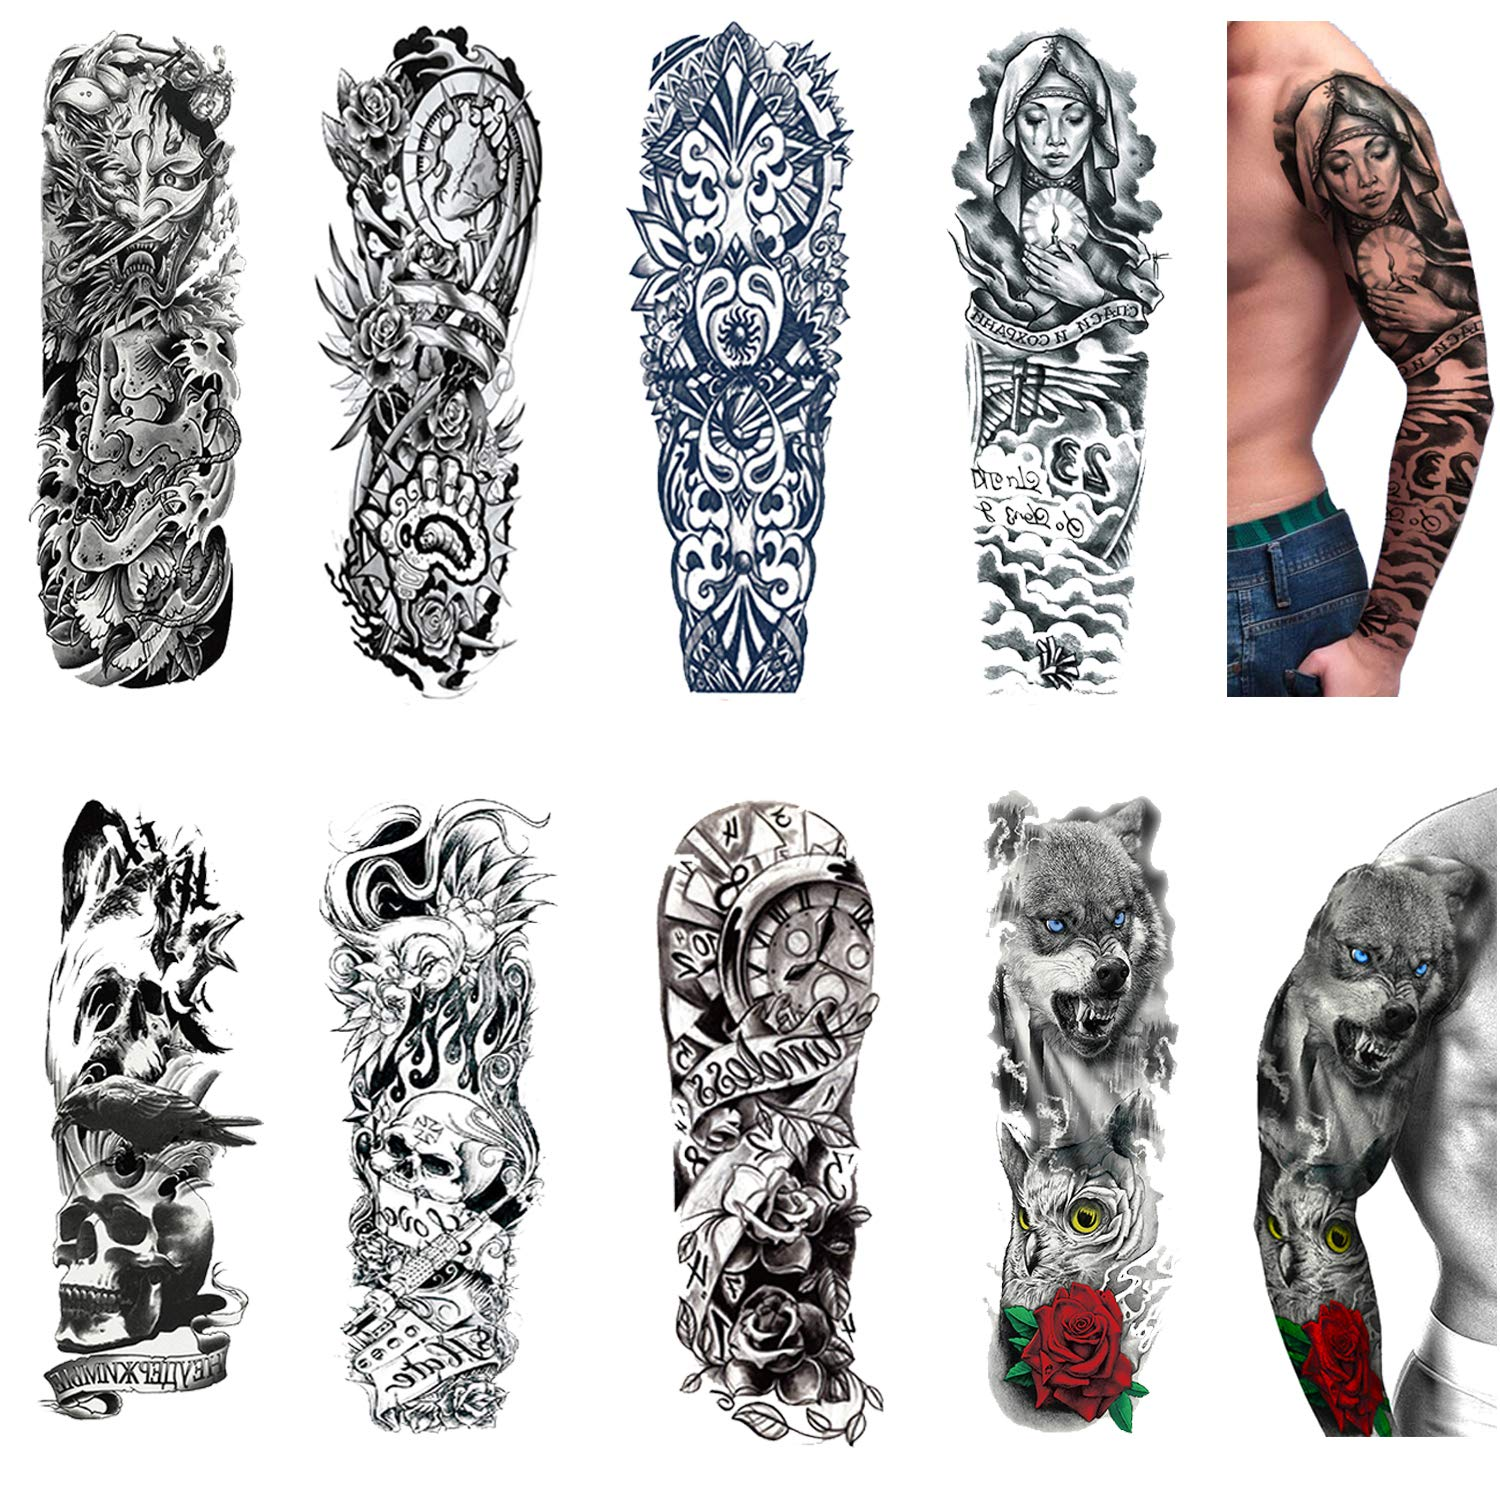 Amazon Com Temporary Tattoos 8 Sheets Black Full Arm Tattoo Body Stickers For Men Women Adults Kids Beauty